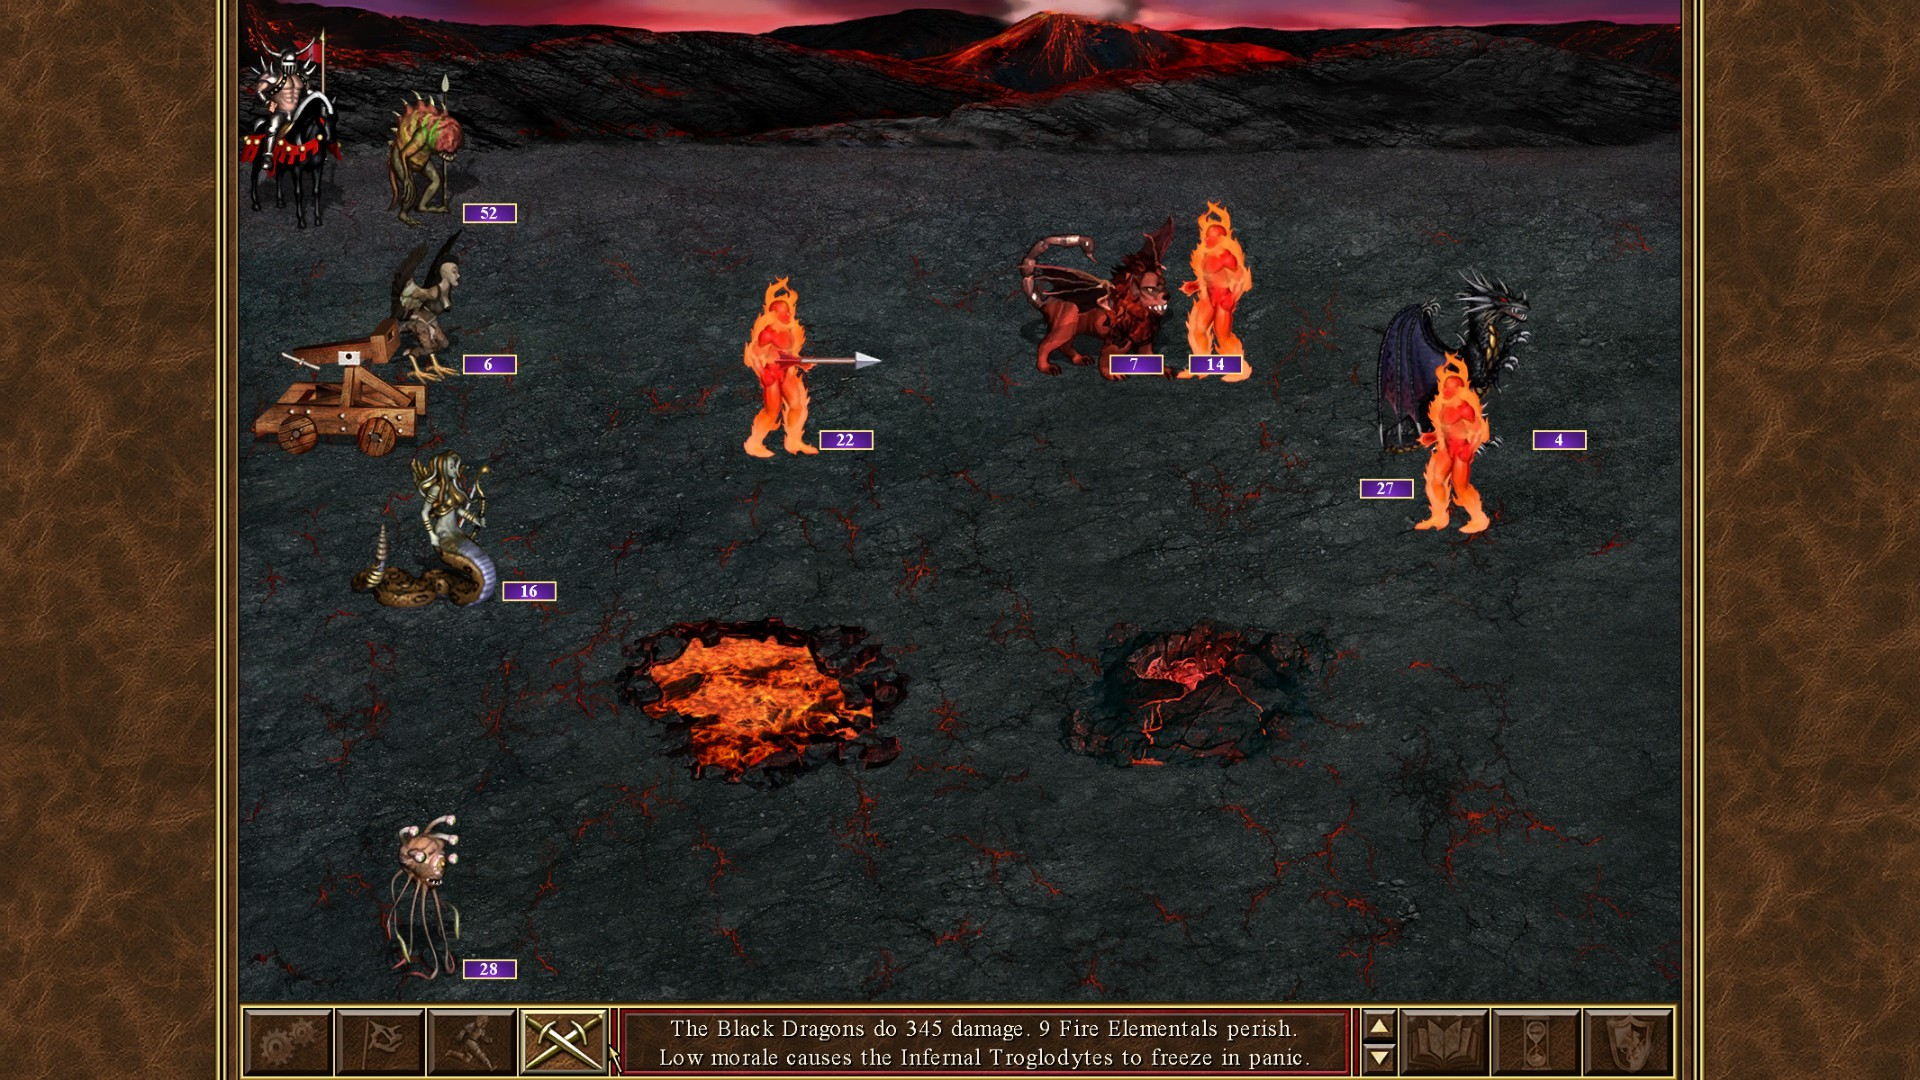 Heroes of Might & Magic III HD Coming to PC and Tablets on